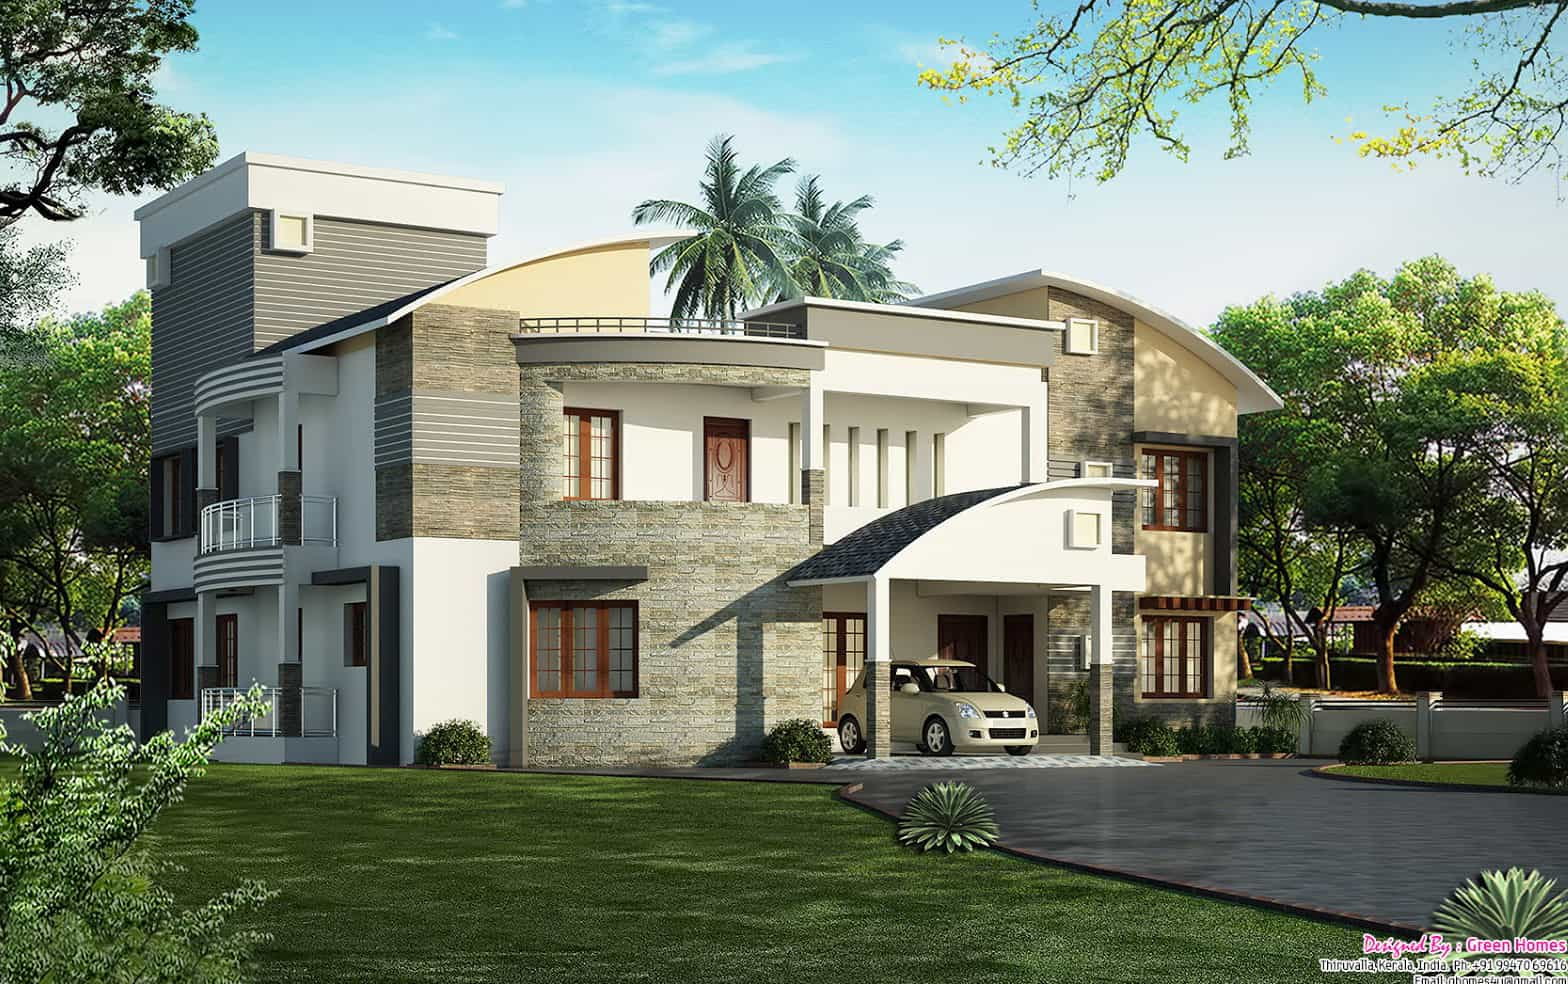 Unique house designs keralahouseplanner for Cute house design